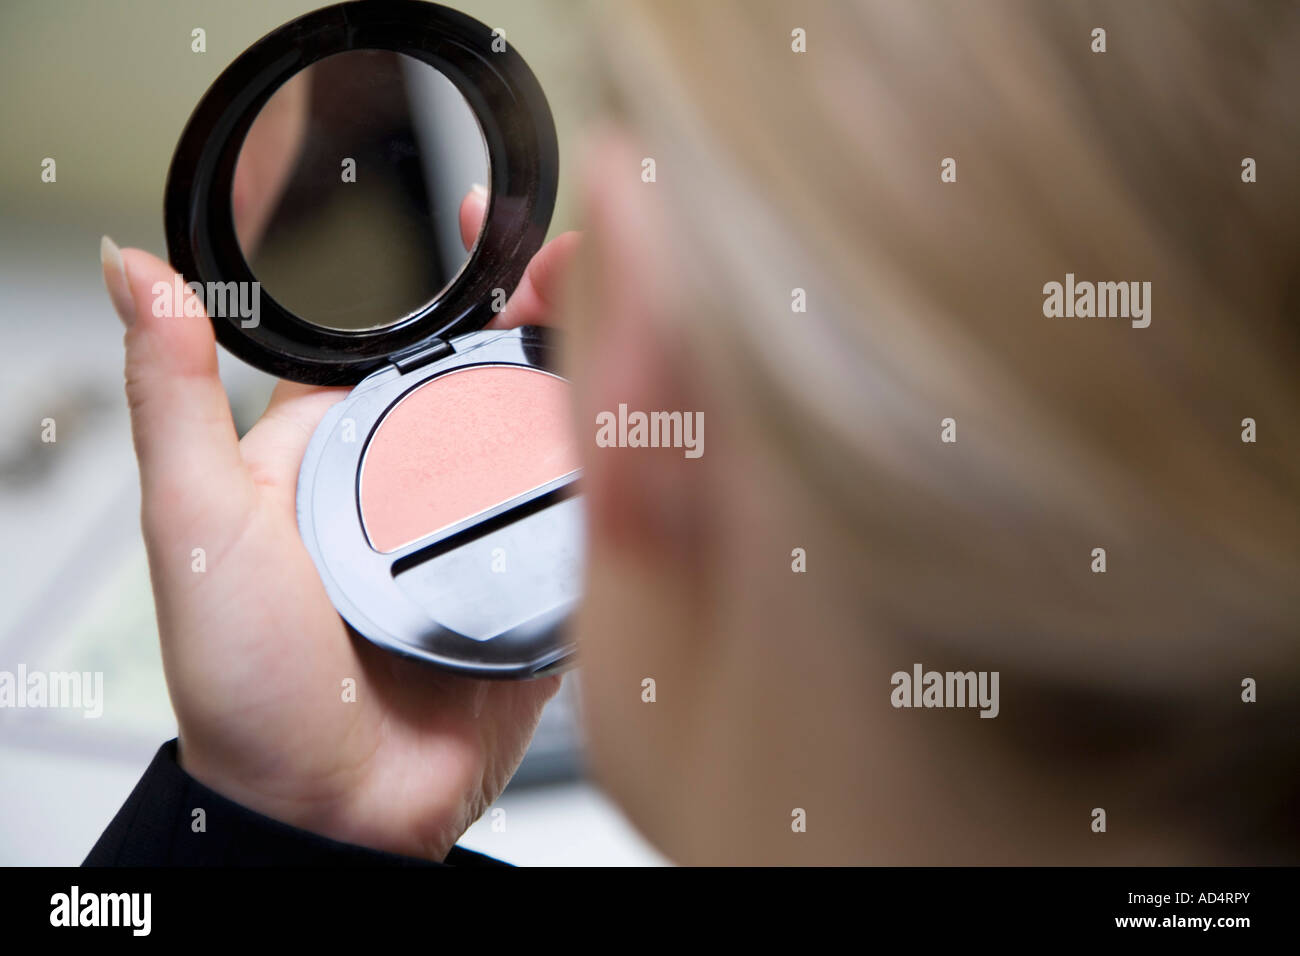 Detail of a woman holding a pressed powder compact - Stock Image